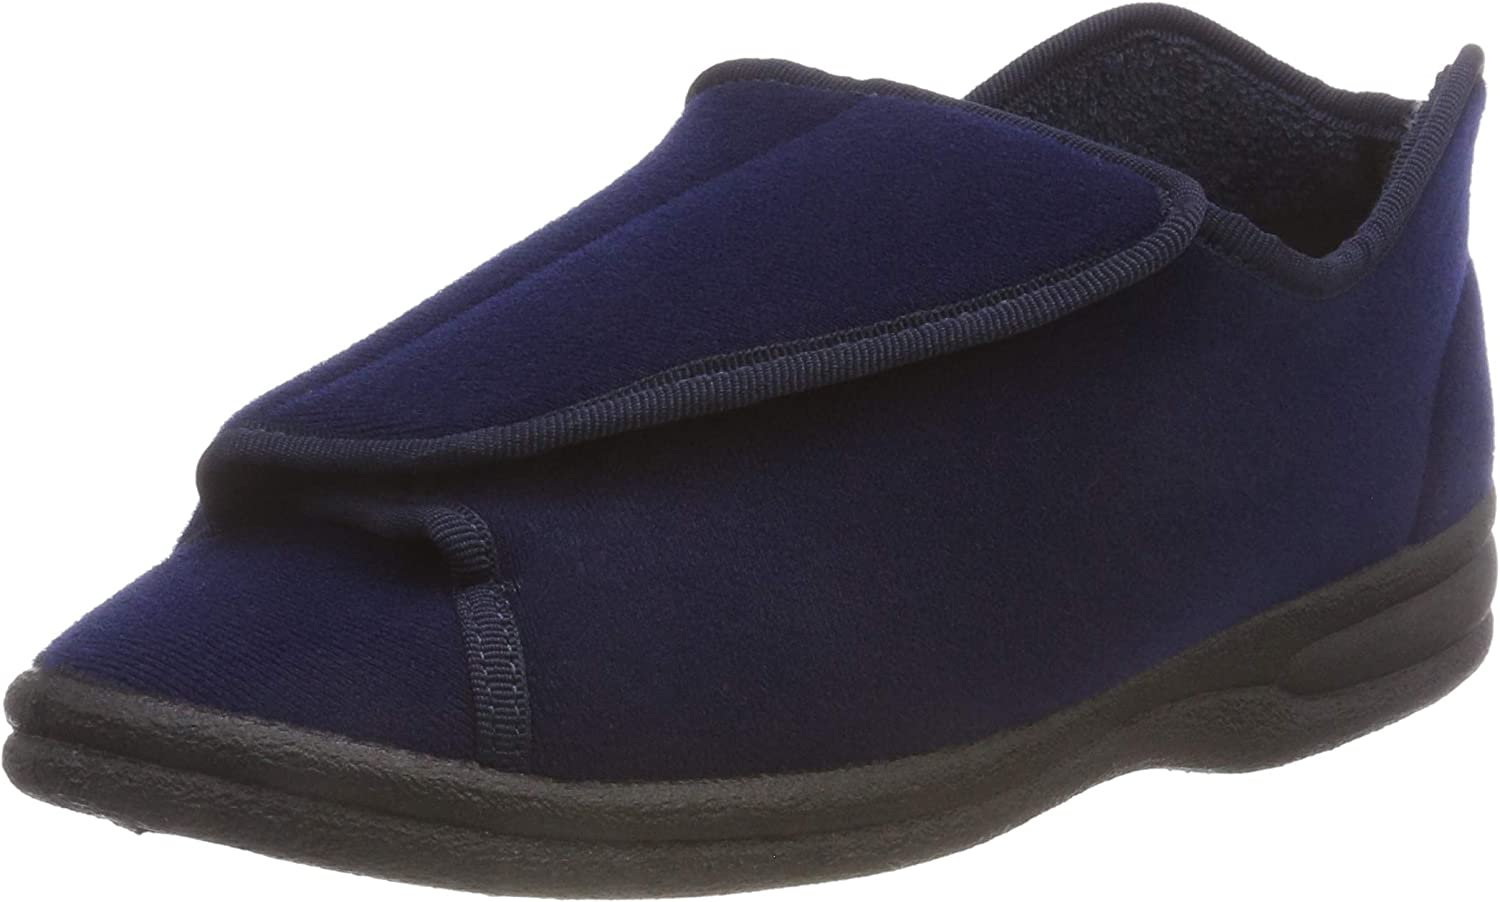 Podowell Men's Trainer Don't miss the campaign Low Overseas parallel import regular item